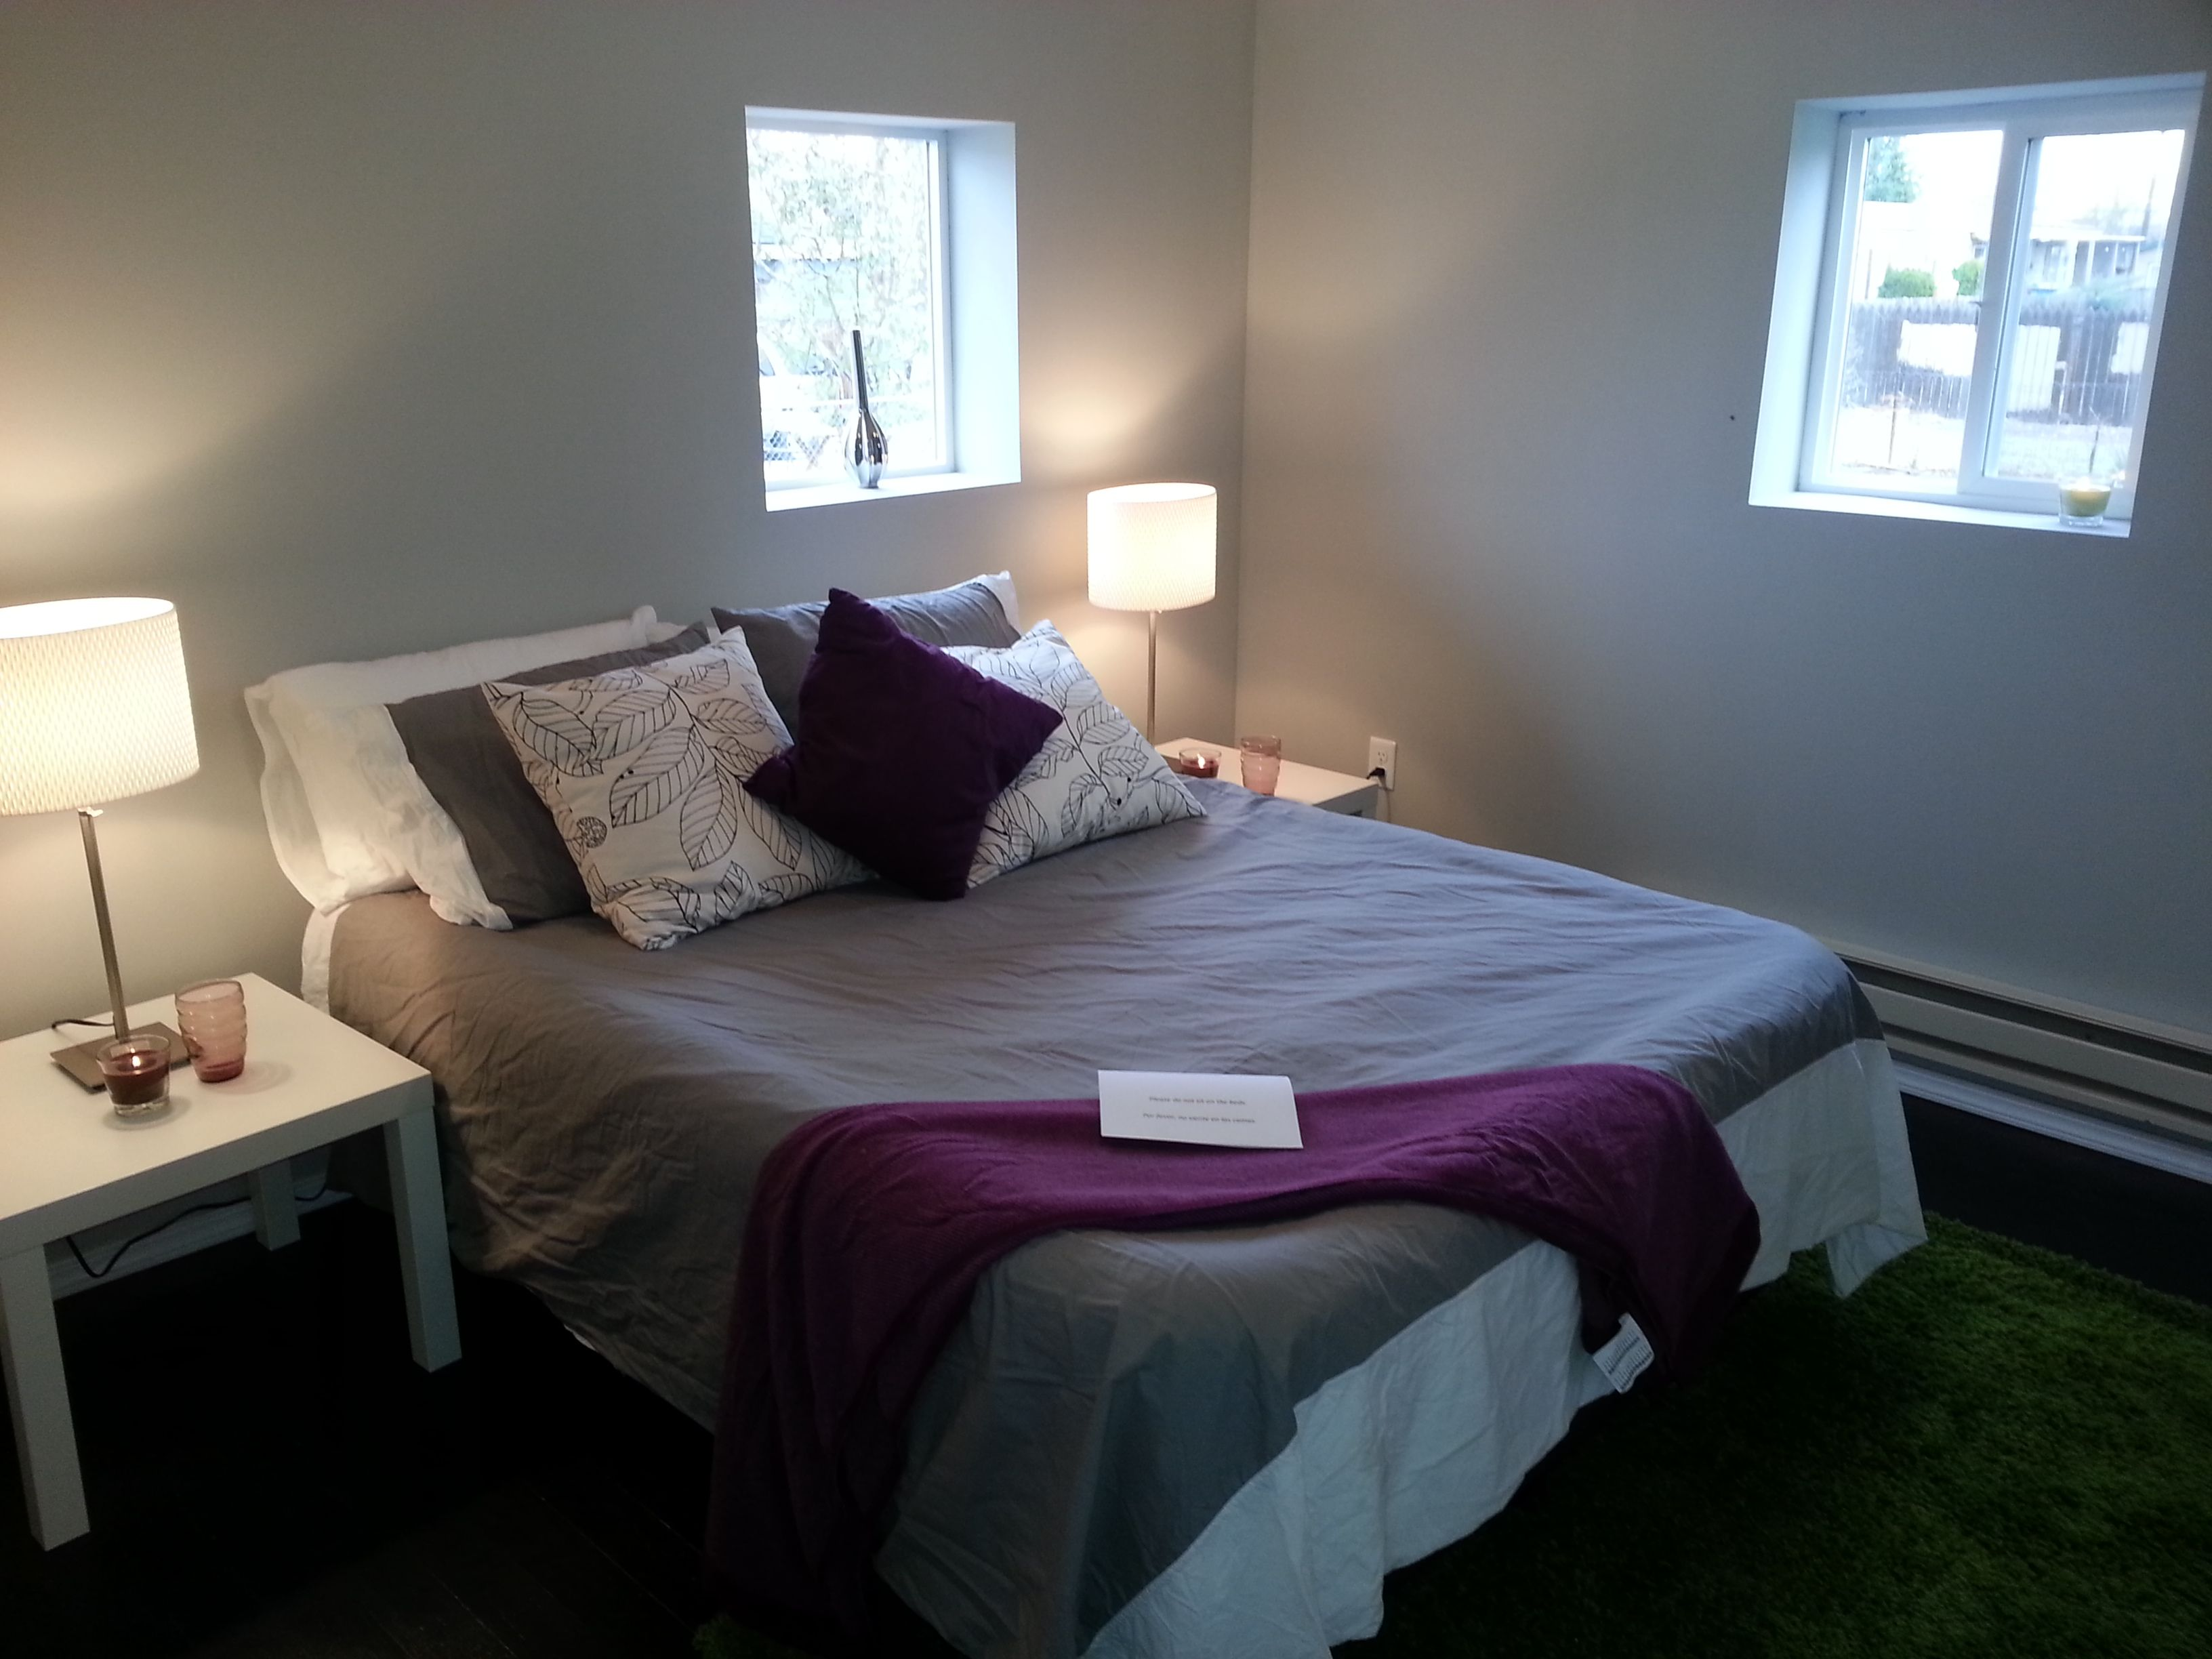 Chic master bedroom with gray and eggplant